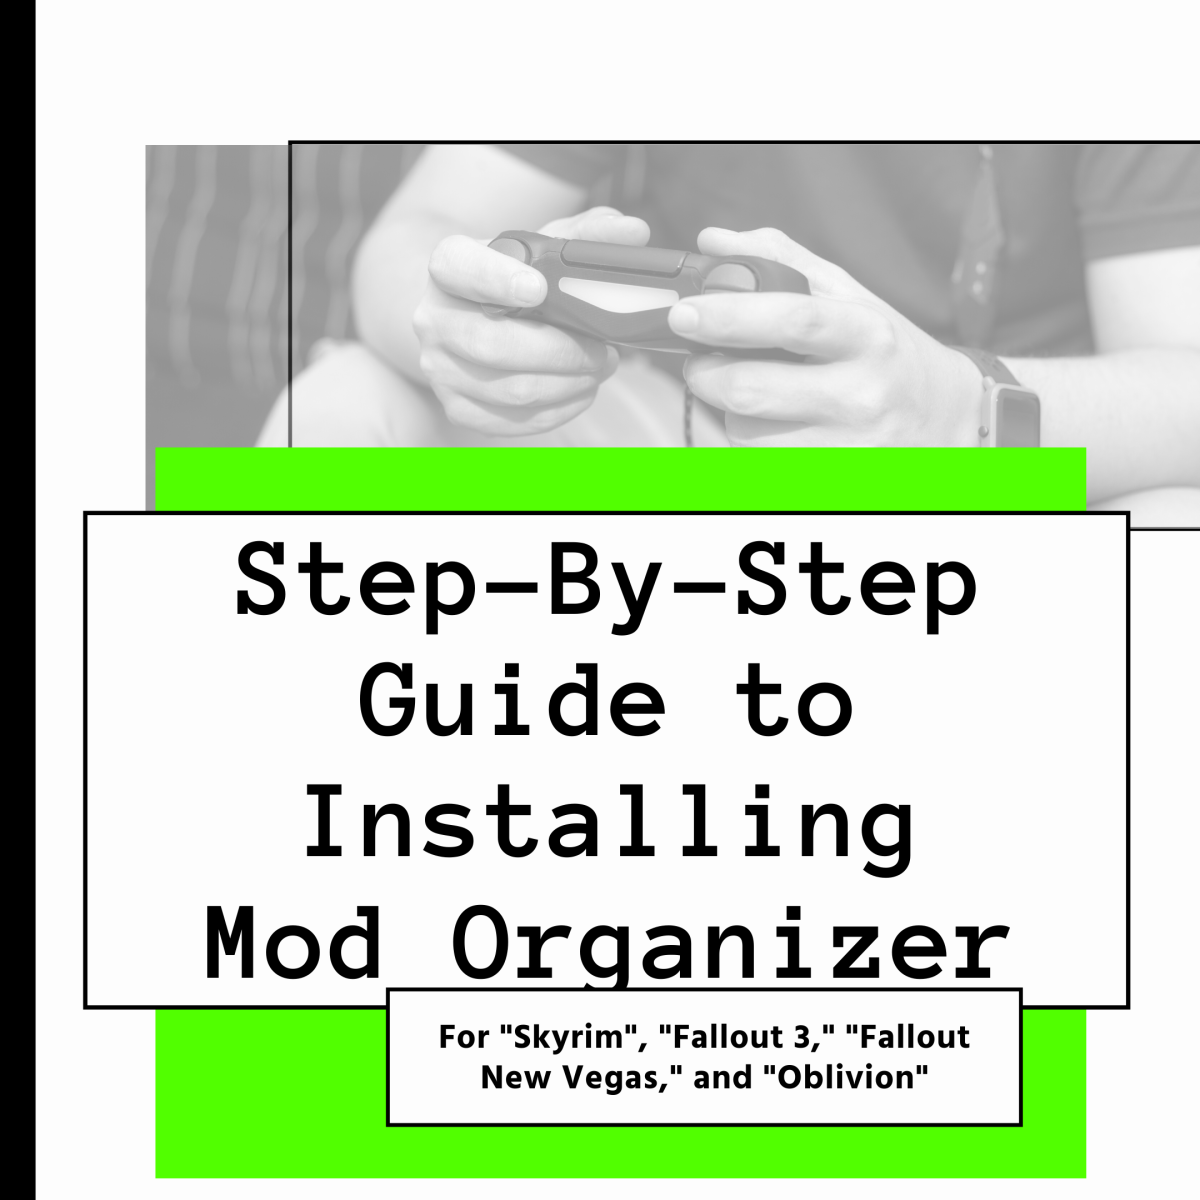 """How to Install and Configure Mod Organizer for """"Skyrim,"""" """"Fallout 3,"""" """"Fallout New Vegas,"""" and """"Oblivion"""""""